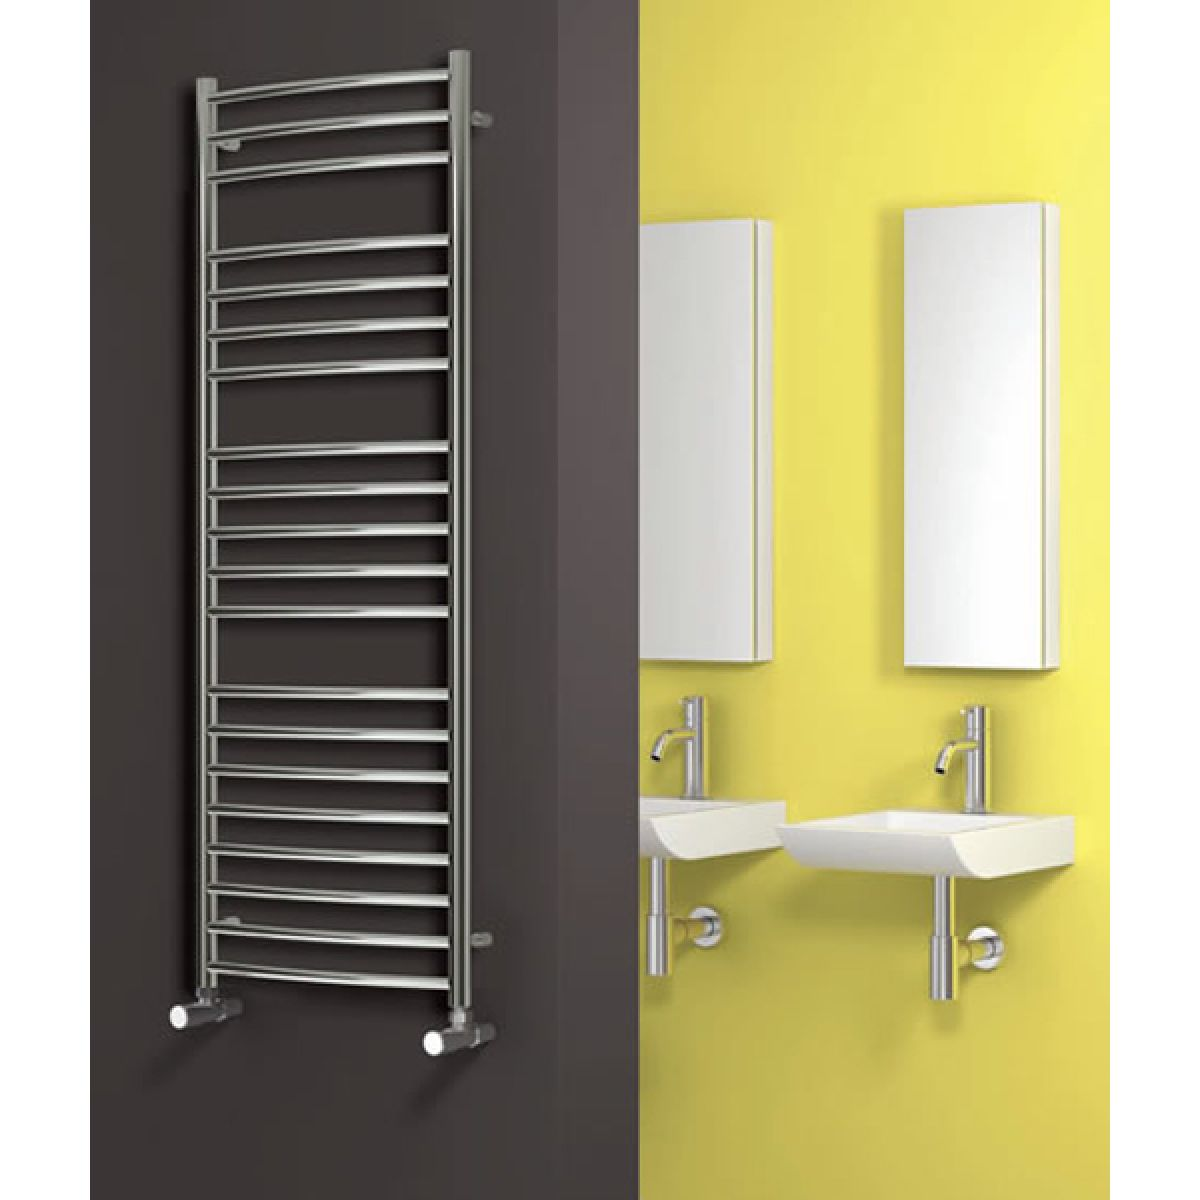 Reina Eos Polished Stainless Steel Curved Electric Towel rail 430 x 500mm